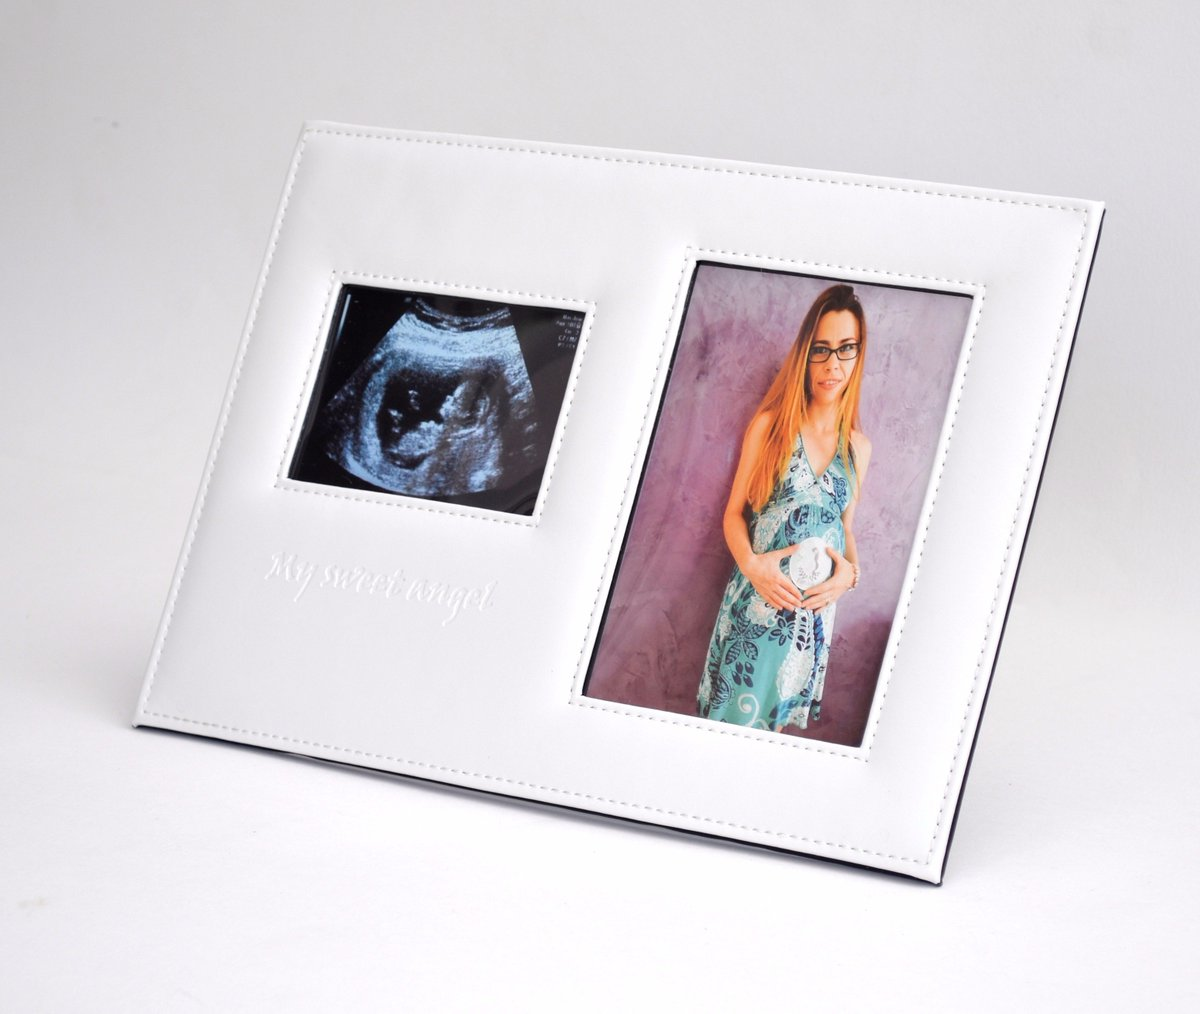 Melician shop melicianshop twitter use the melician shop ultrasound picture frame as a baby shower gift jeuxipadfo Gallery